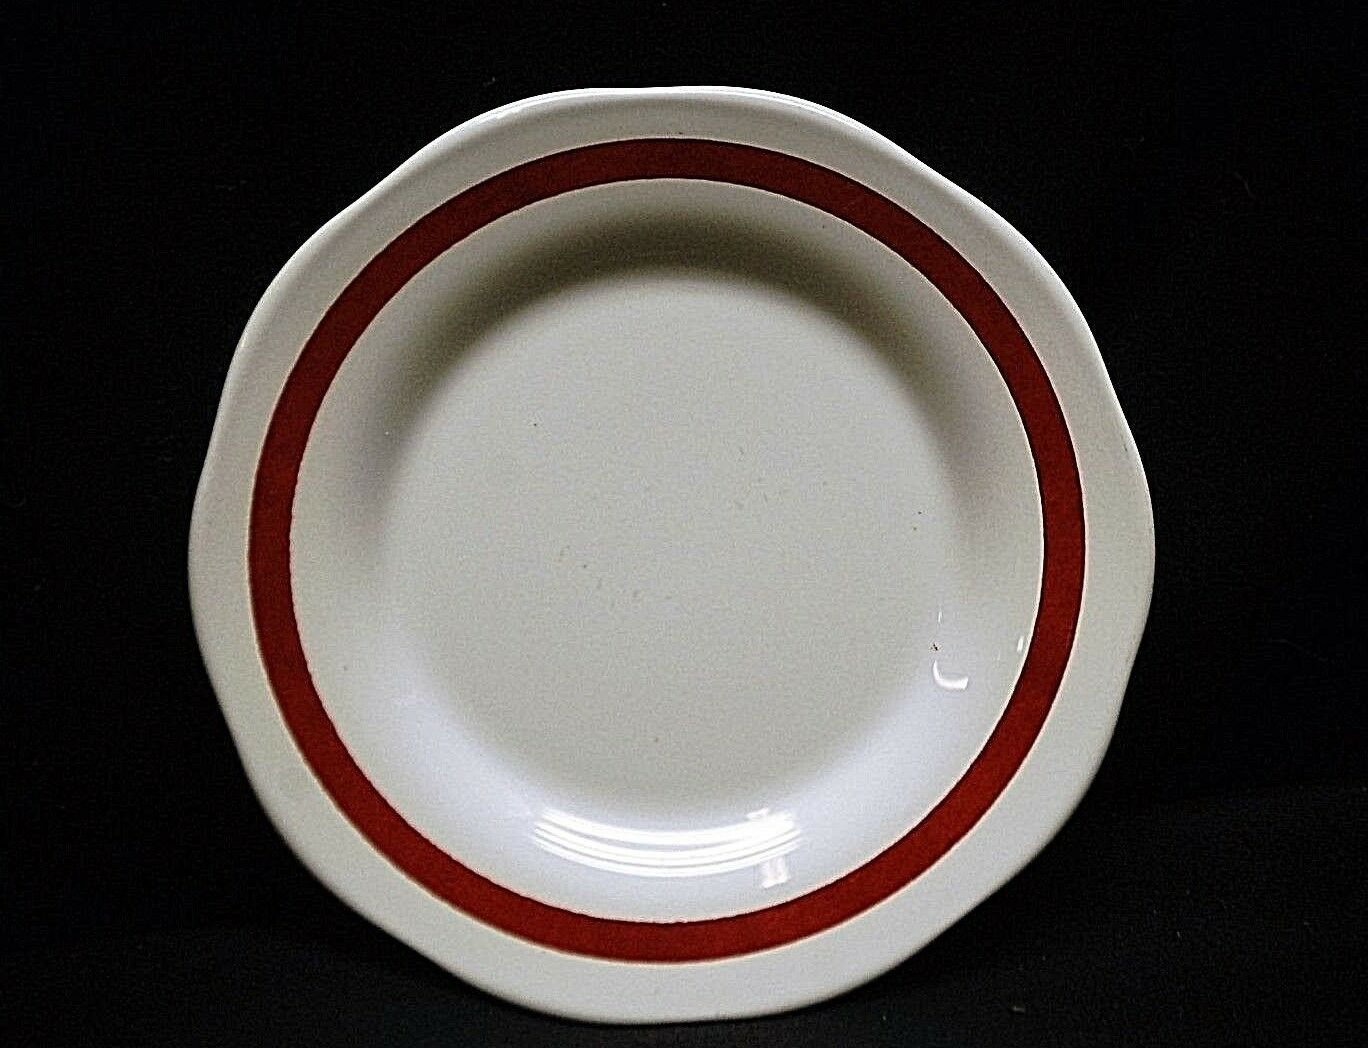 Vintage Pyroceram by Corning Restaurant Ware Bread & Butter Plate White & Maroon - $9.89